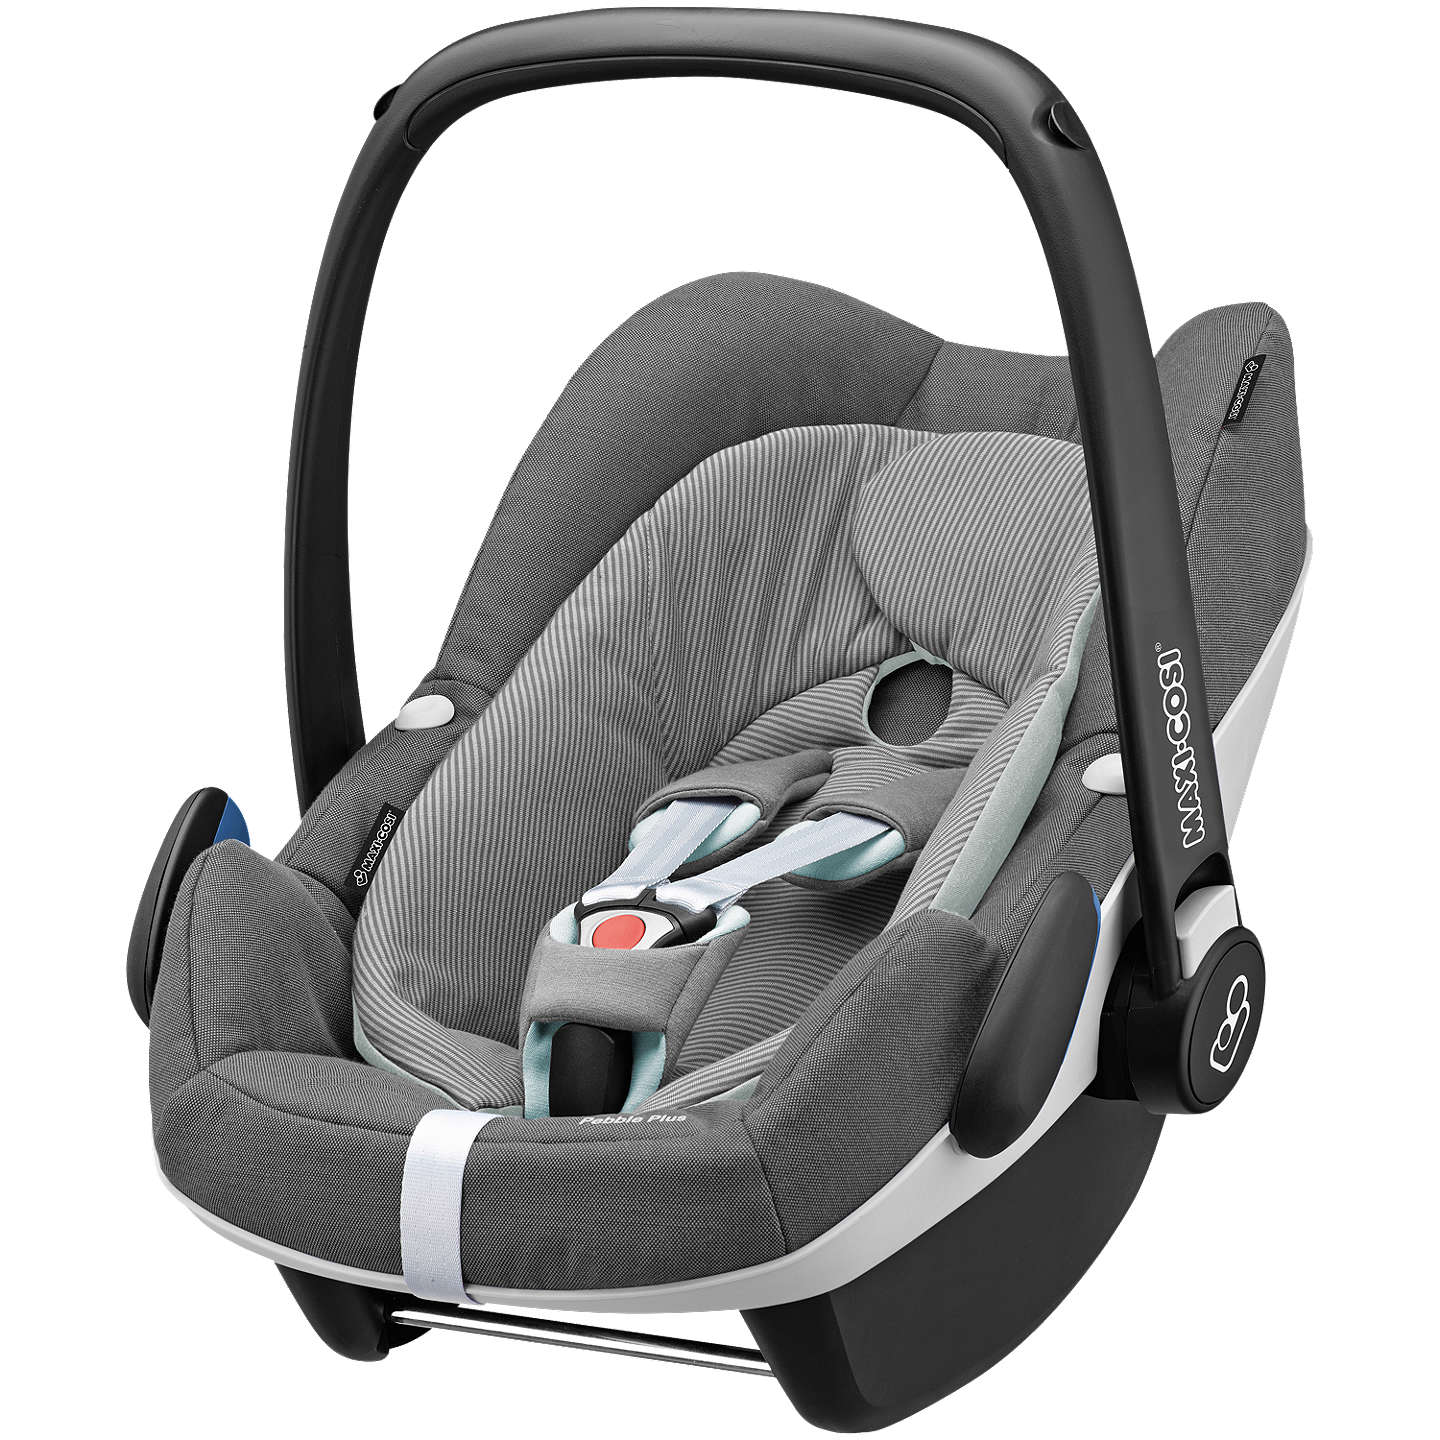 Maxi Cosi Pebble : maxi cosi pebble plus i size group 0 baby car seat concrete grey at john lewis ~ Blog.minnesotawildstore.com Haus und Dekorationen